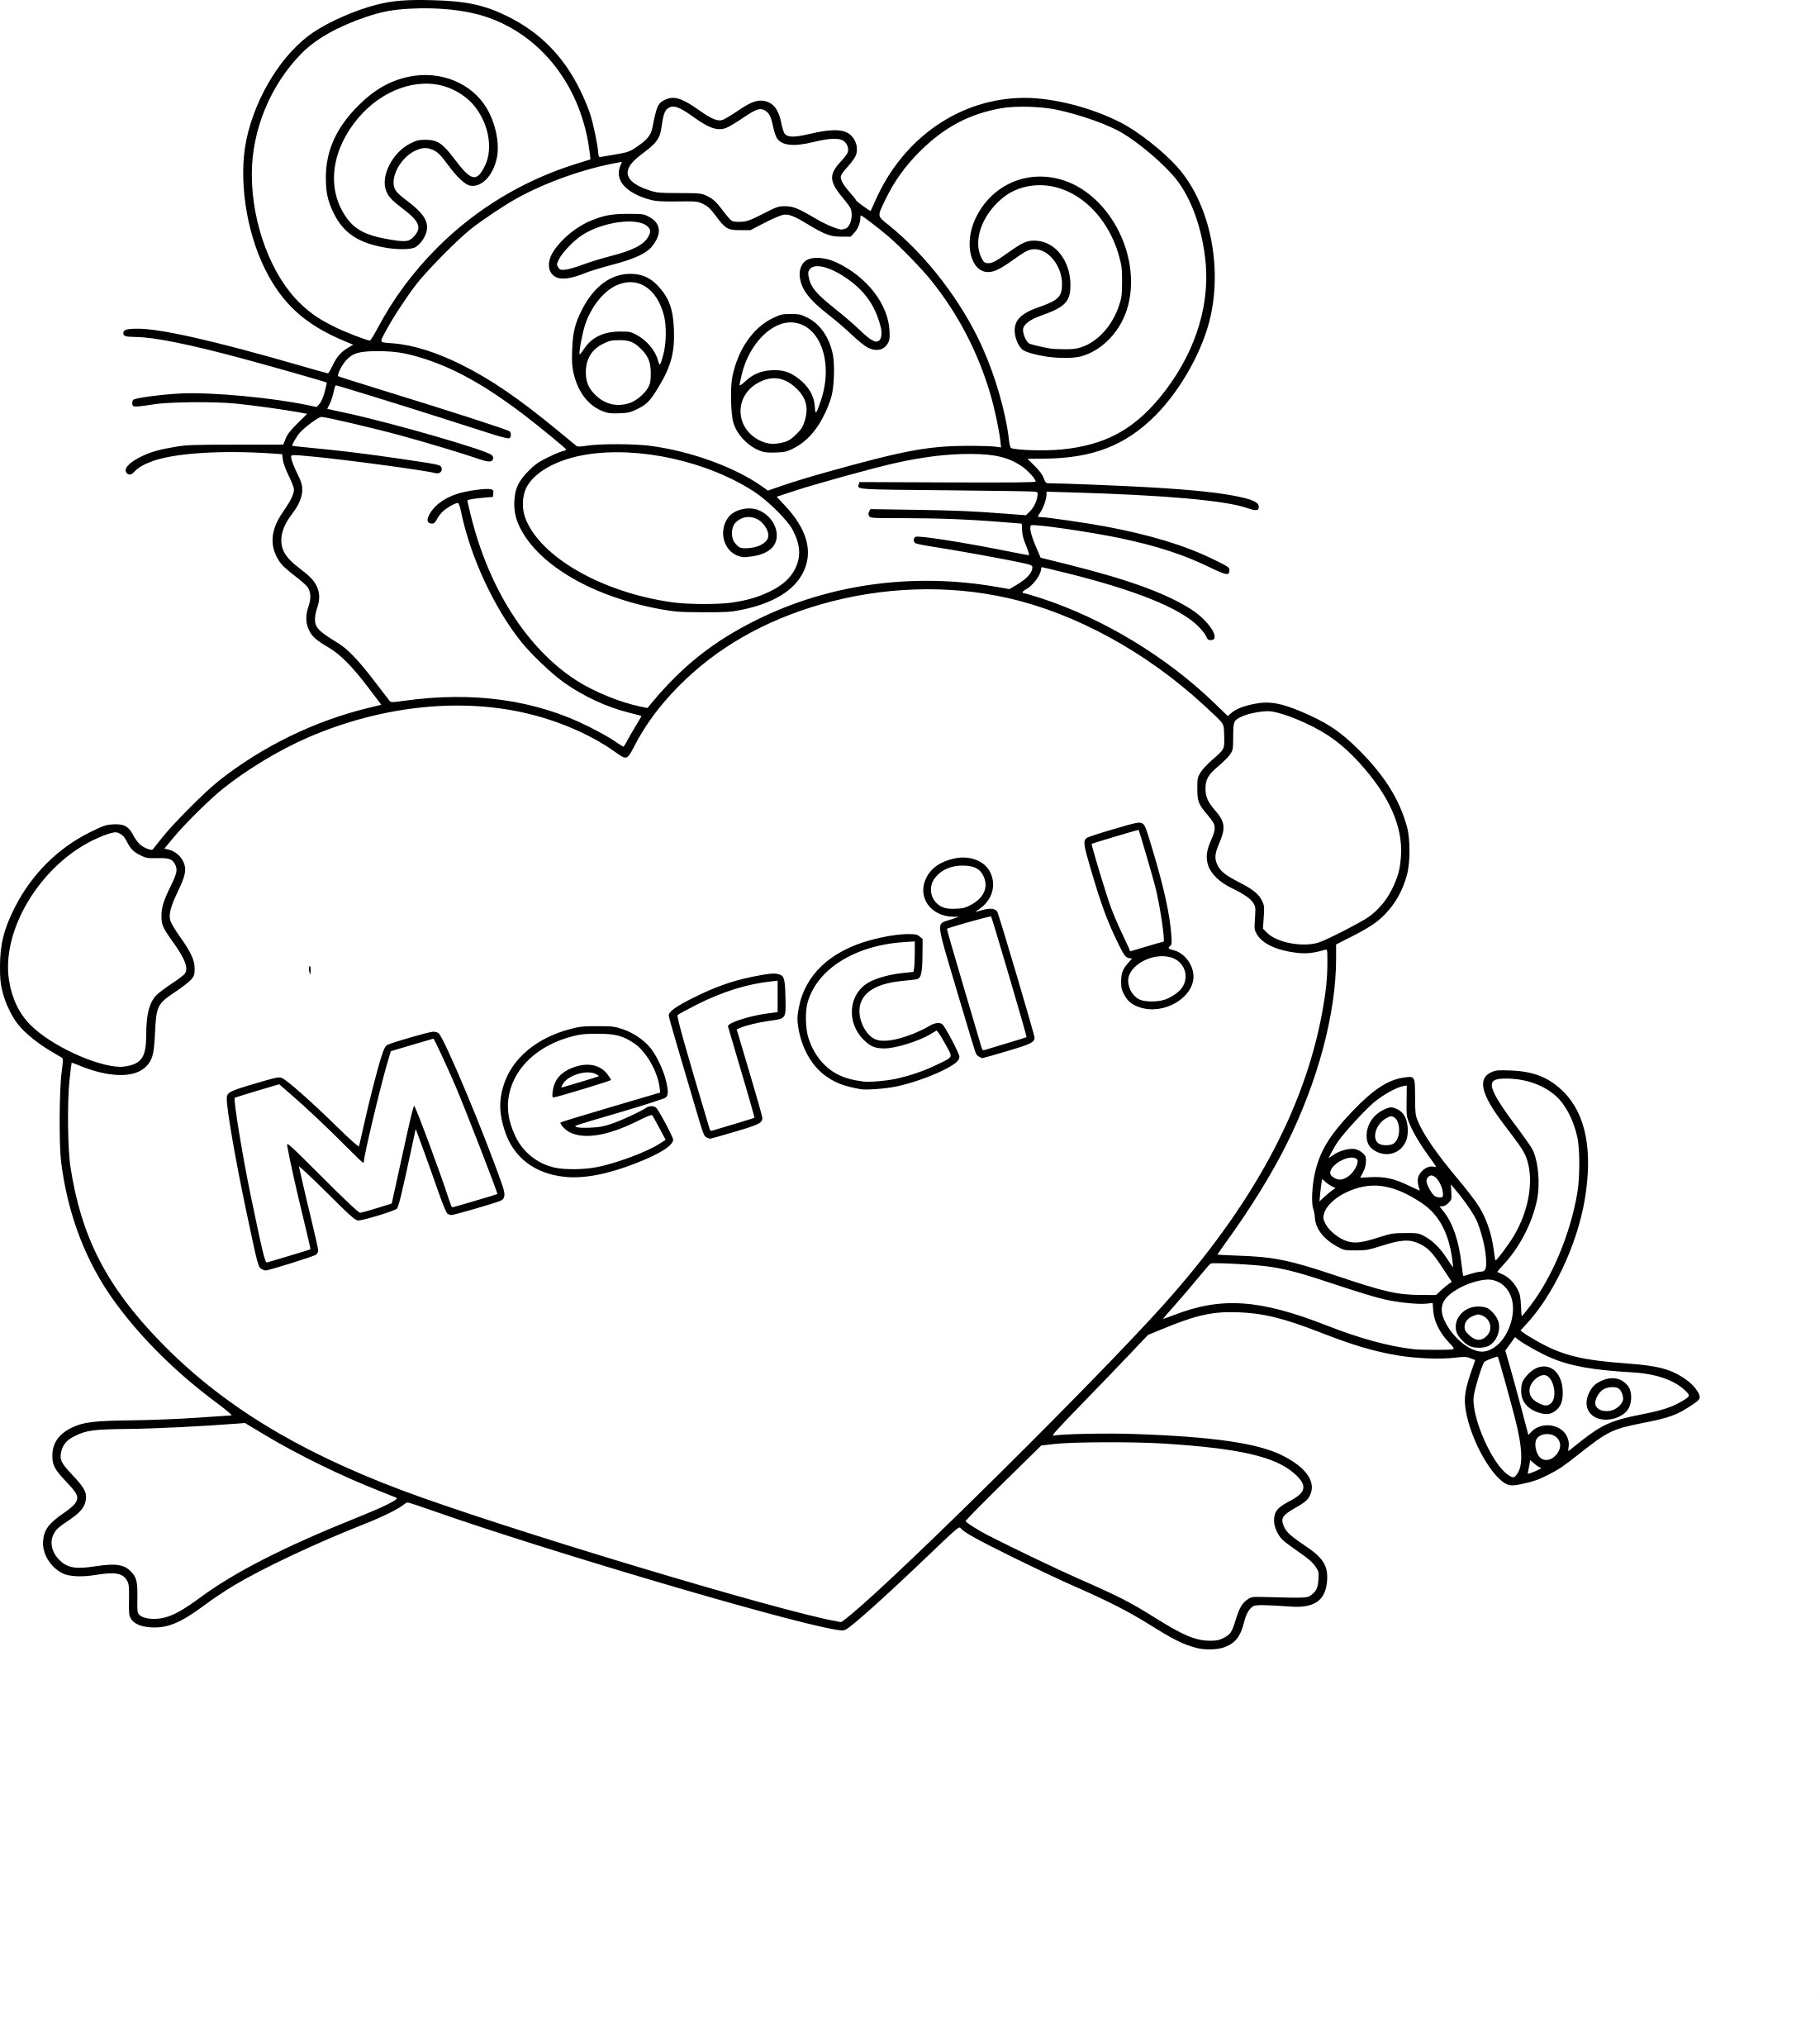 Coloriage merci